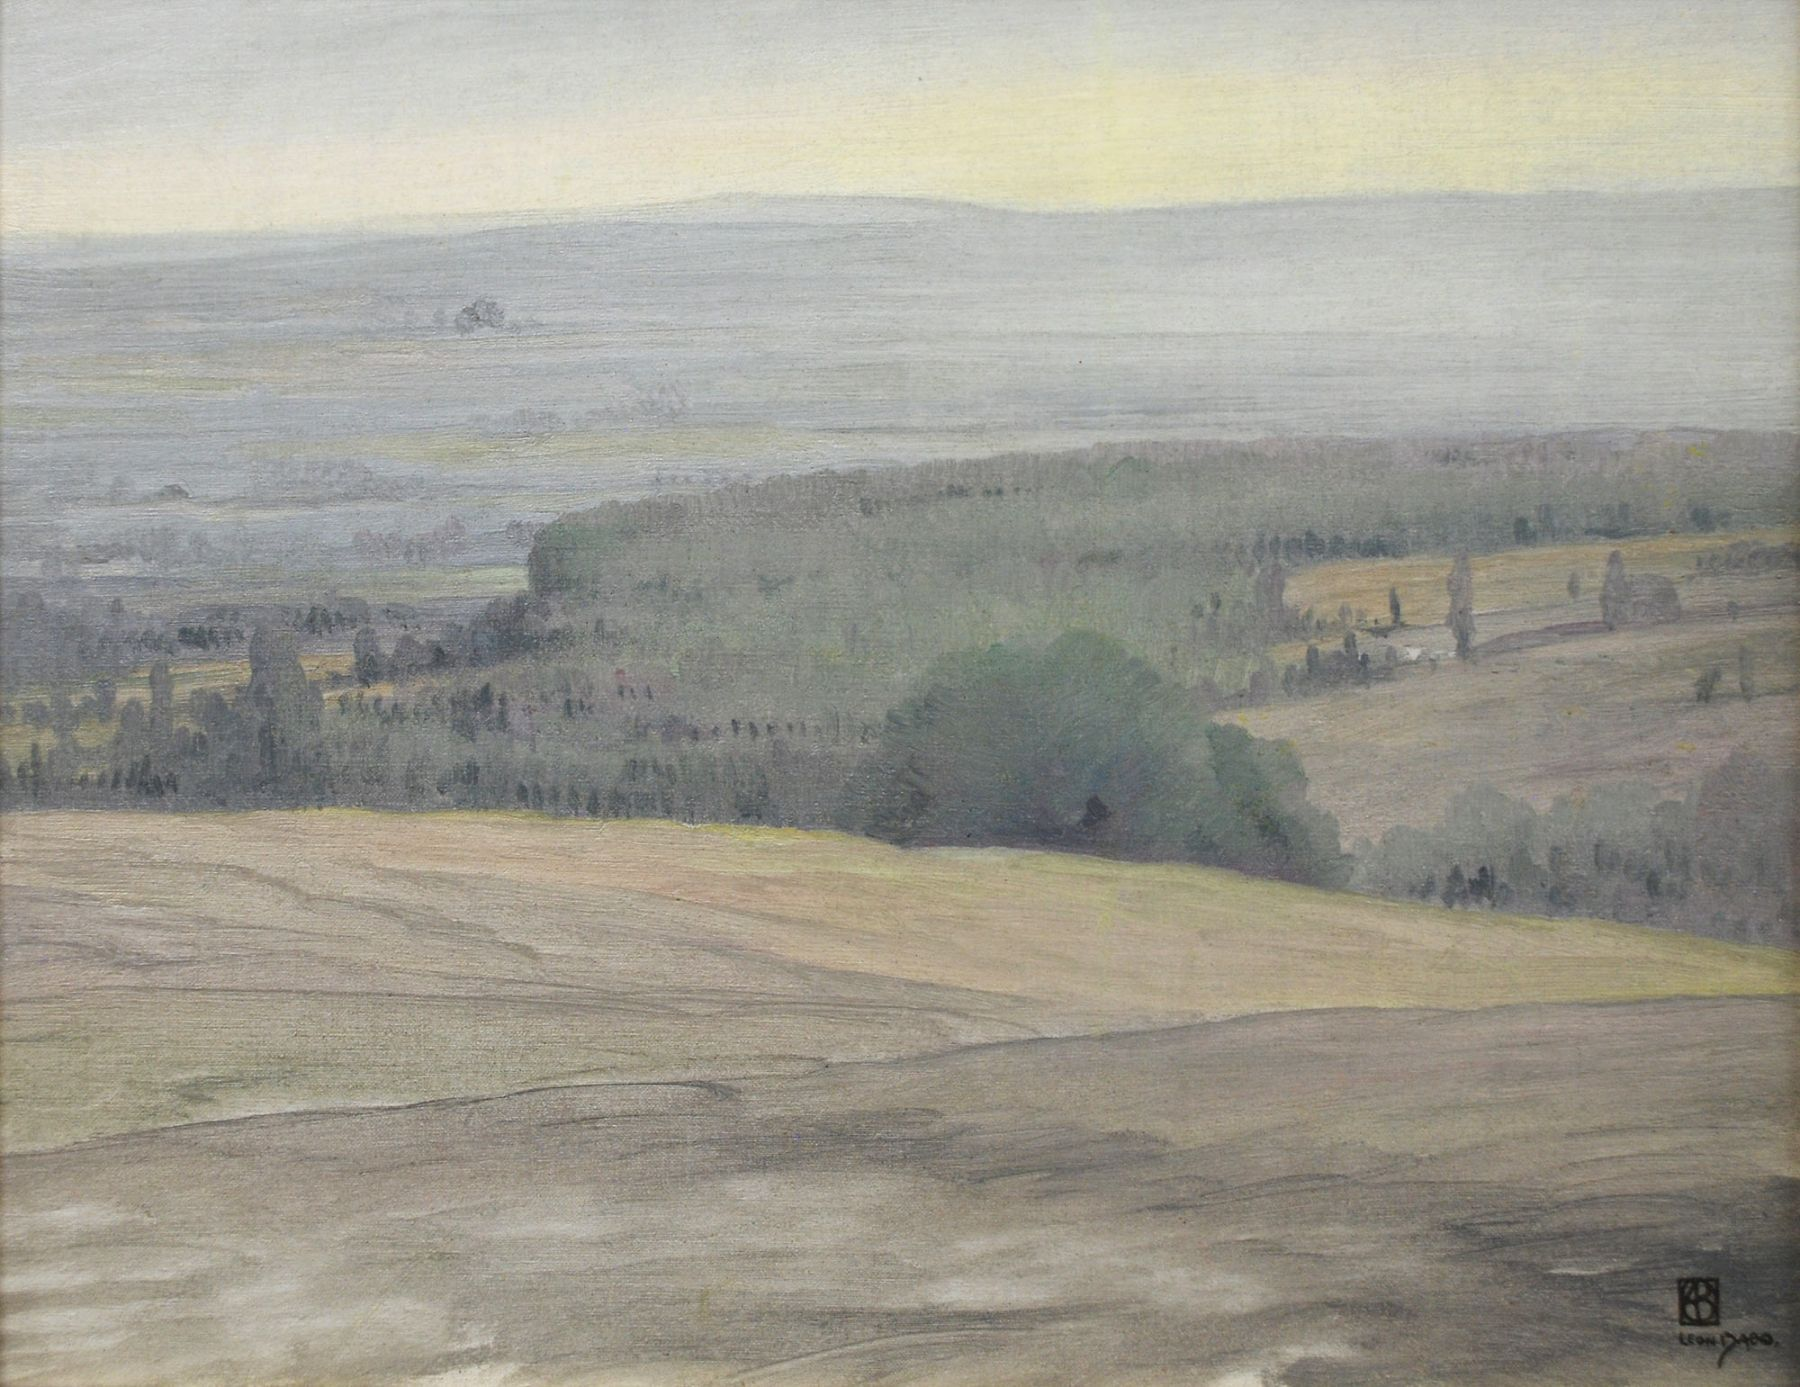 LEON DABO (1864-1960)   Inventory ID 155090  Early Evening Hudson Valley, c 1900 15.25 x 19.5 inches  |  Oil on canvas Signed lower right  Exhibited The Life & Art of Leon Dabo, 2012;   D. Wigmore Fine Art, Inc., NY, NY, 1999.  Published Leon Dabo, A Retrospective, 8  Price $35000